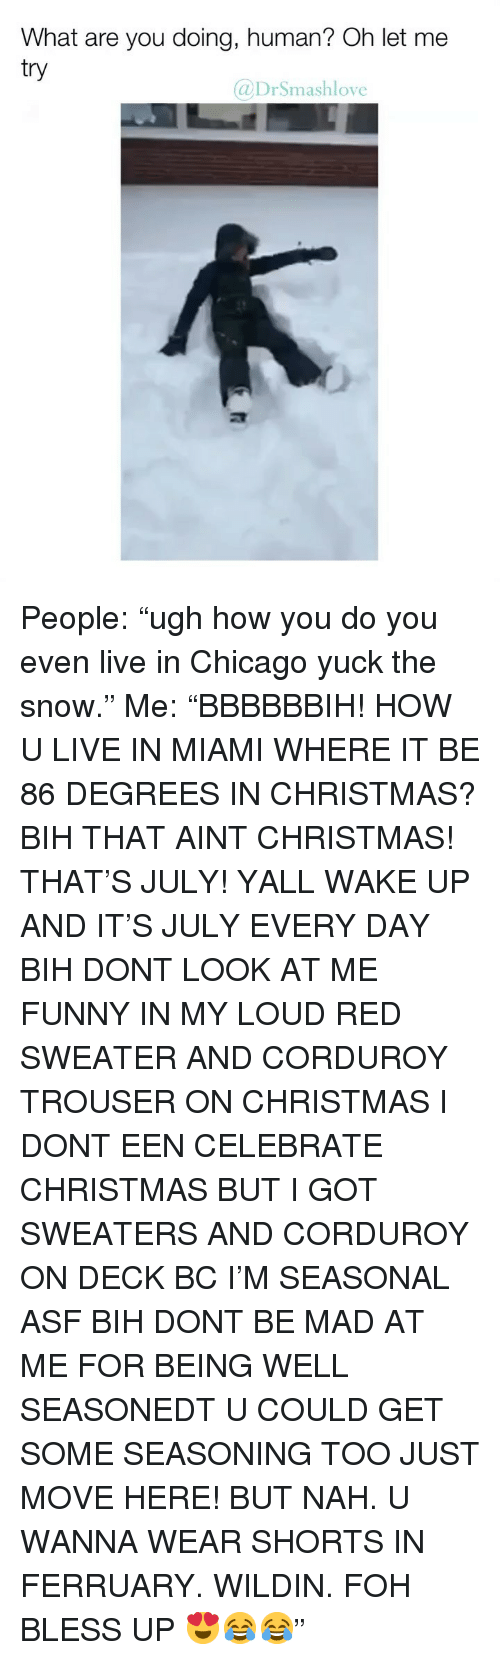 "Bless Up, Chicago, and Christmas: What are you doing, human? Oh let me  try  @DrSmashlove People: ""ugh how you do you even live in Chicago yuck the snow."" Me: ""BBBBBBIH! HOW U LIVE IN MIAMI WHERE IT BE 86 DEGREES IN CHRISTMAS? BIH THAT AINT CHRISTMAS! THAT'S JULY! YALL WAKE UP AND IT'S JULY EVERY DAY BIH DONT LOOK AT ME FUNNY IN MY LOUD RED SWEATER AND CORDUROY TROUSER ON CHRISTMAS I DONT EEN CELEBRATE CHRISTMAS BUT I GOT SWEATERS AND CORDUROY ON DECK BC I'M SEASONAL ASF BIH DONT BE MAD AT ME FOR BEING WELL SEASONEDT U COULD GET SOME SEASONING TOO JUST MOVE HERE! BUT NAH. U WANNA WEAR SHORTS IN FERRUARY. WILDIN. FOH BLESS UP 😍😂😂"""